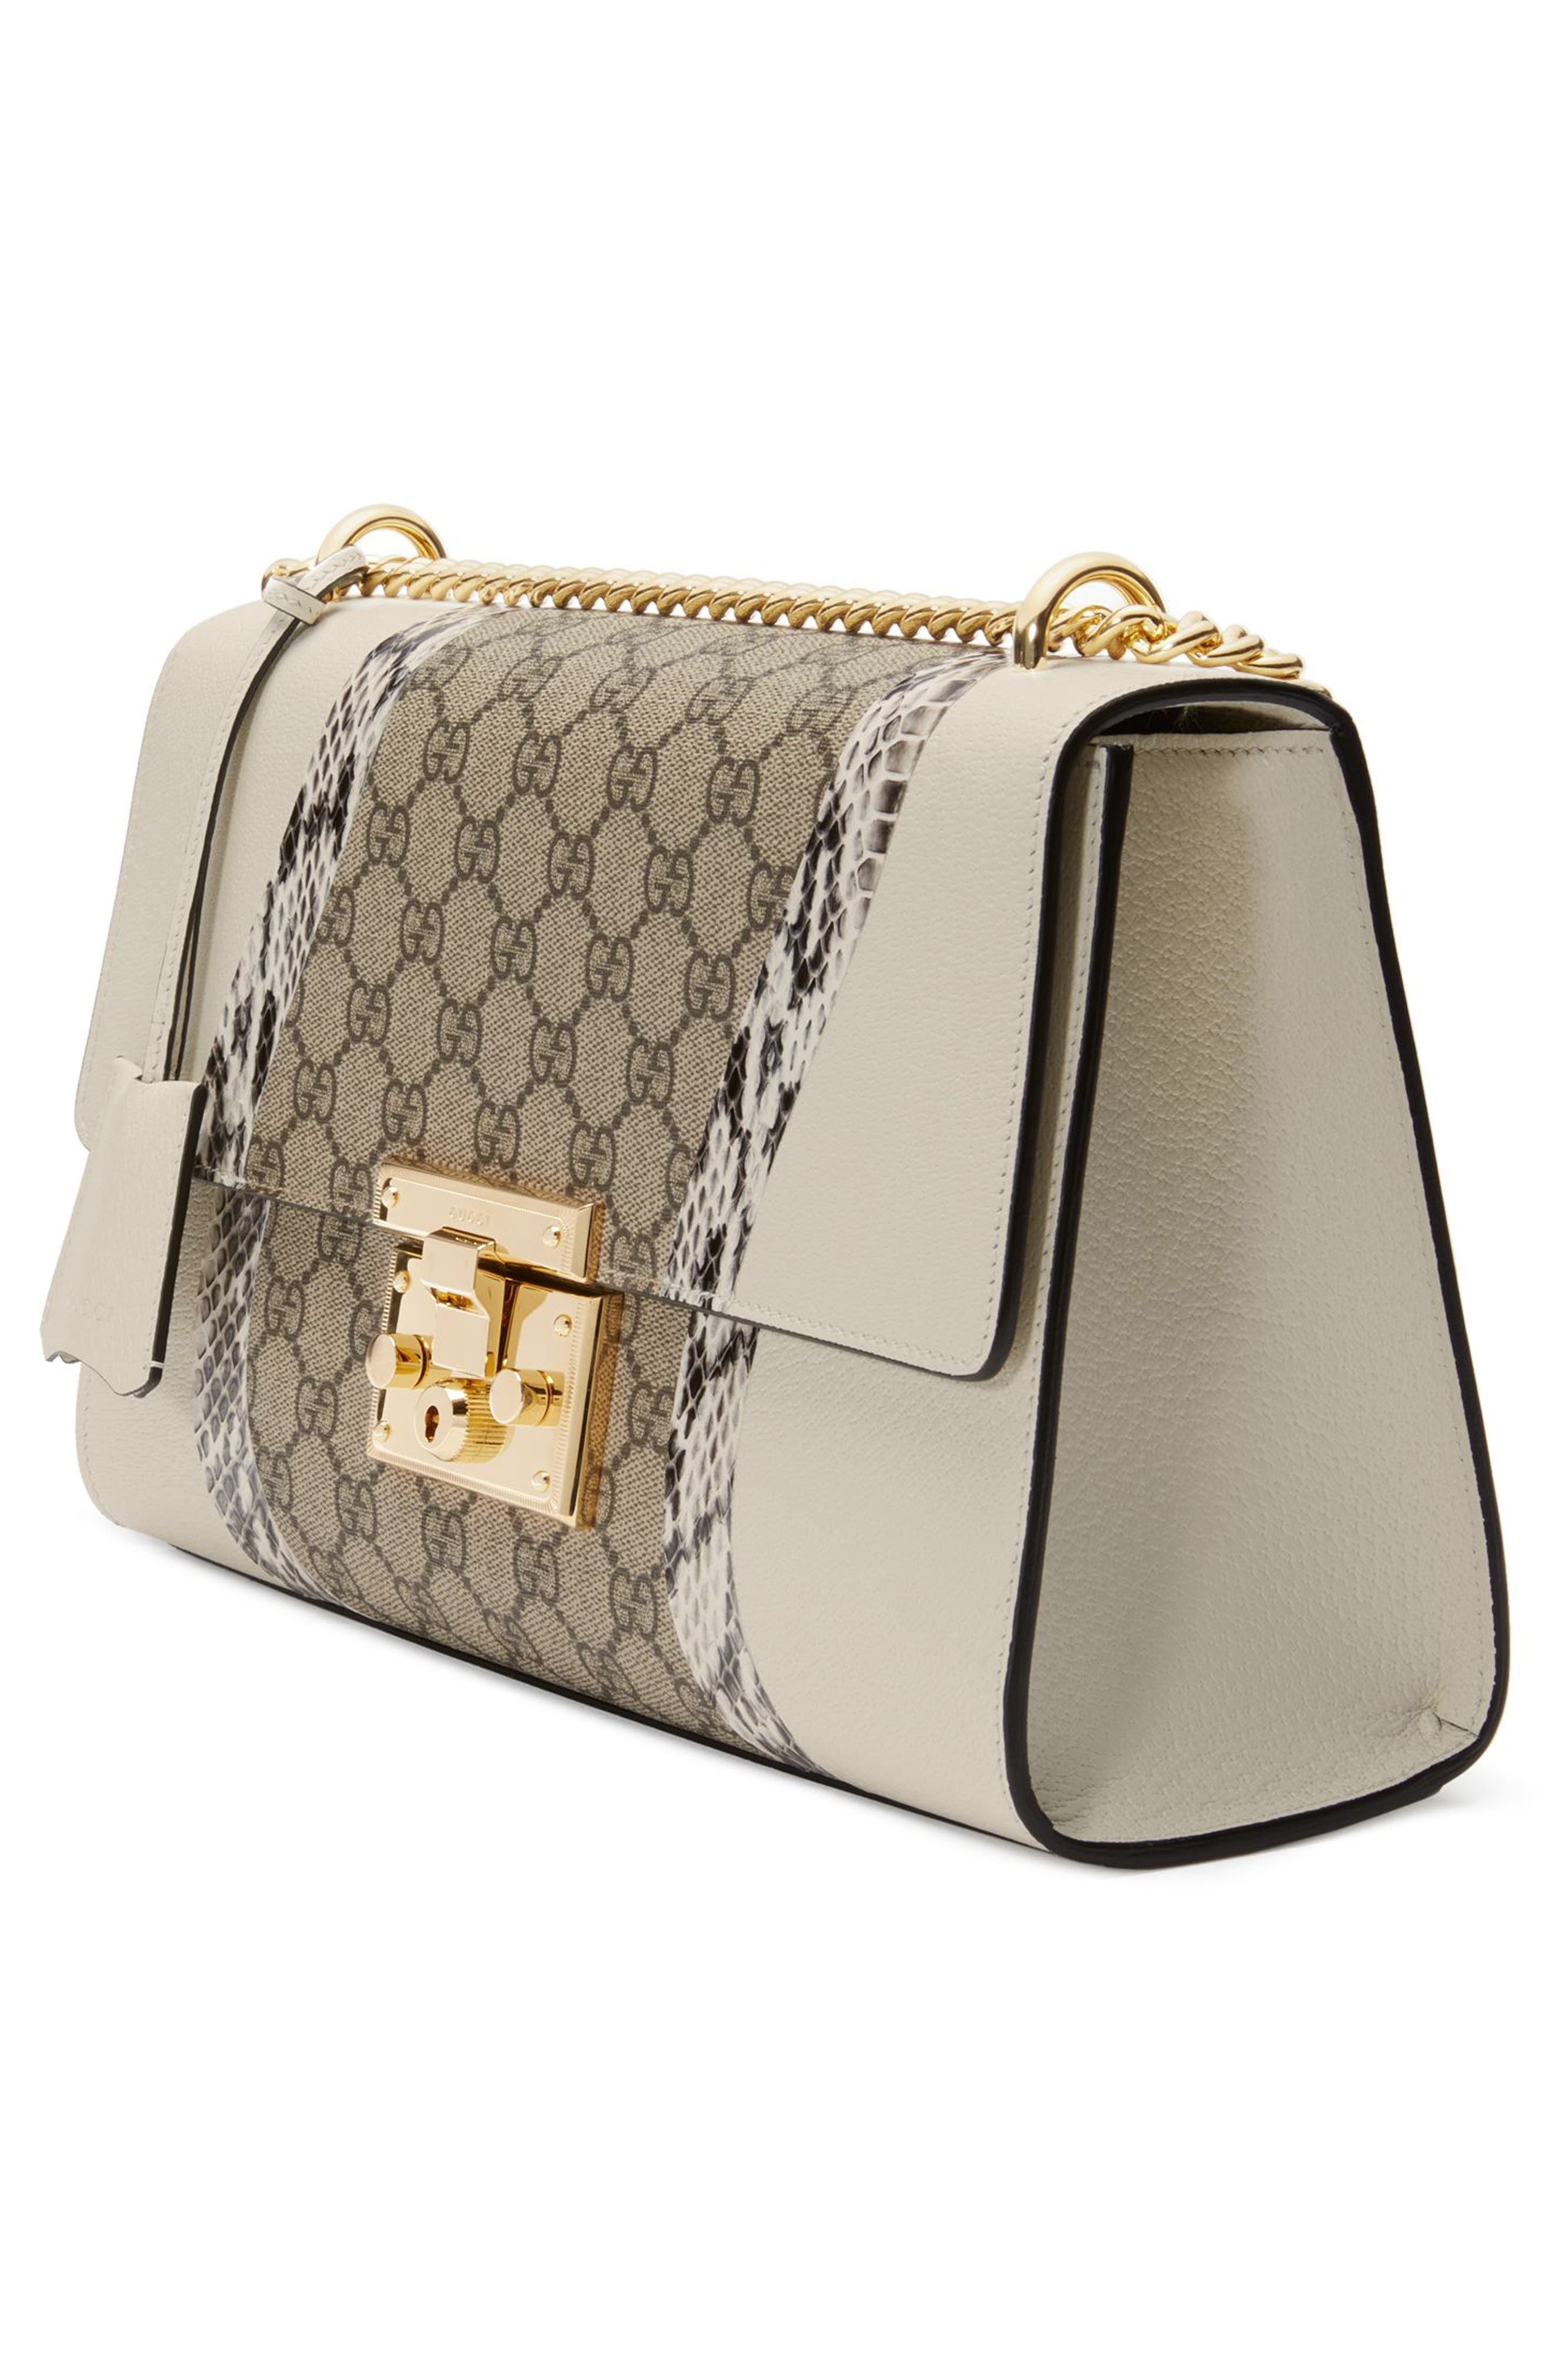 Medium Padlock GG Supreme Wave Shoulder Bag with Genuine Snakeskin Trim,                             Alternate thumbnail 4, color,                             White/ Roccia/ Beige Ebony